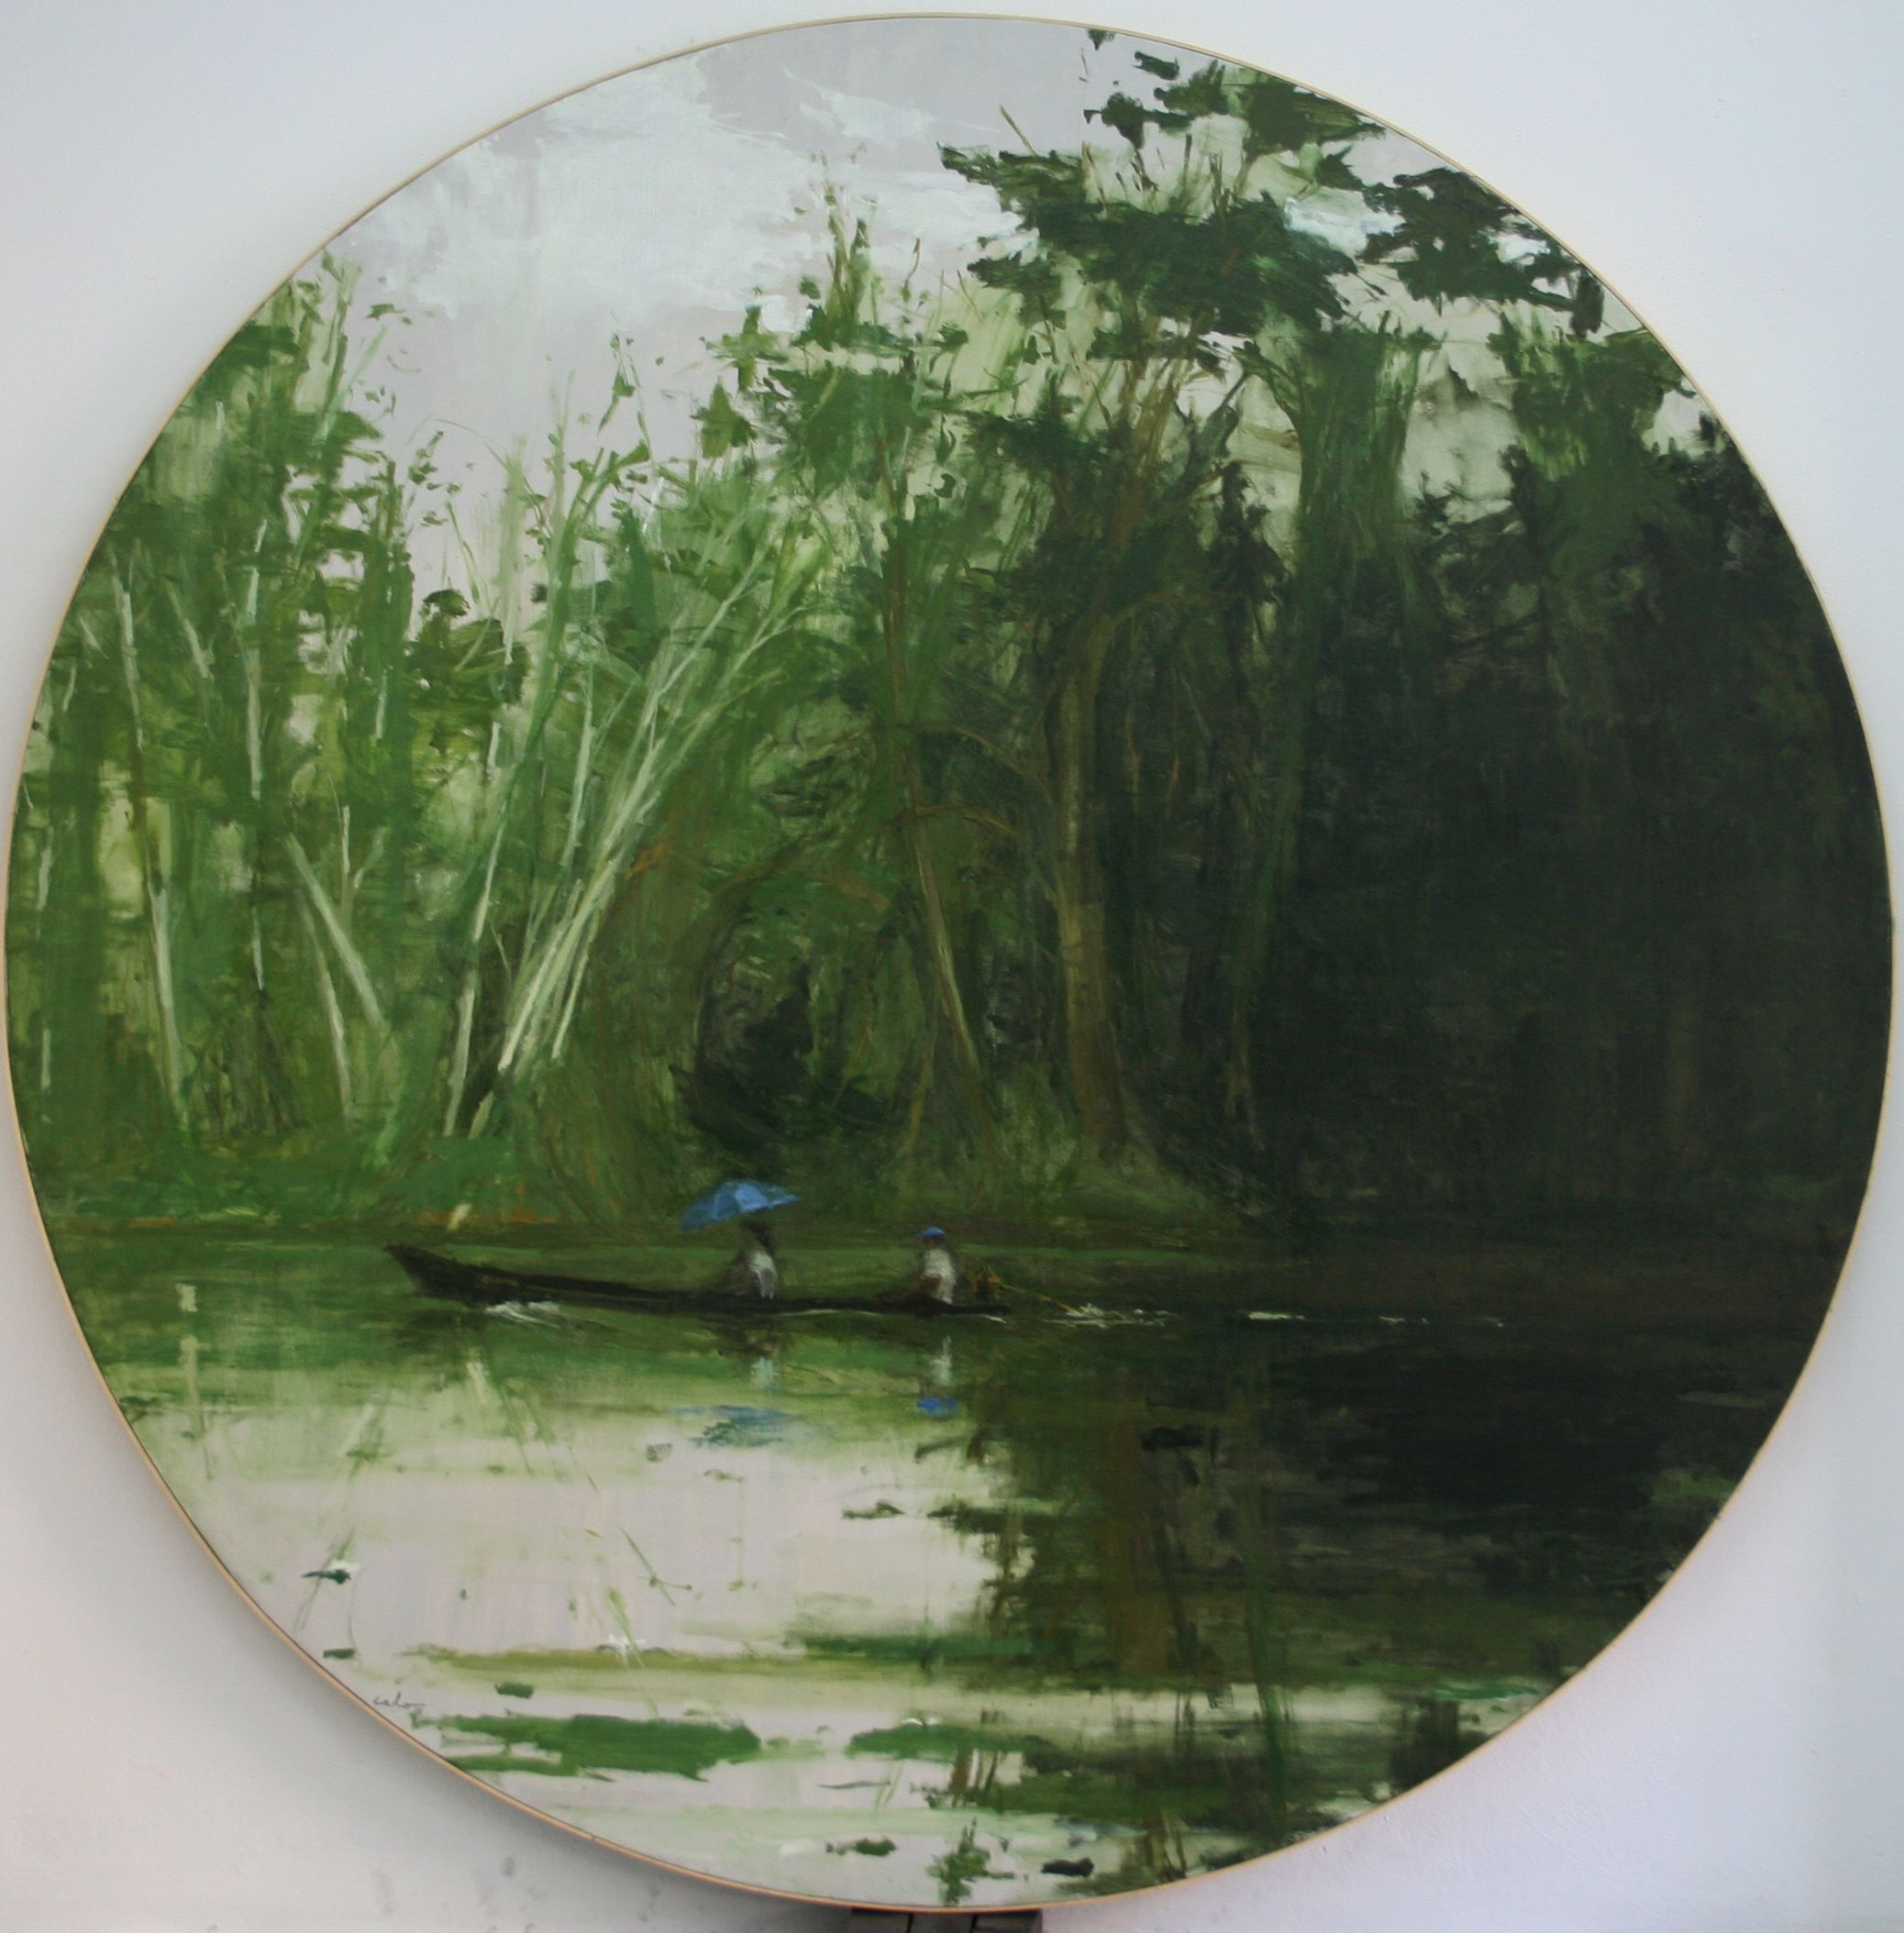 En naviguant de Leticia à Santa Rosa, série Jungle,Calo  Carratalá,Peinture contemporaine